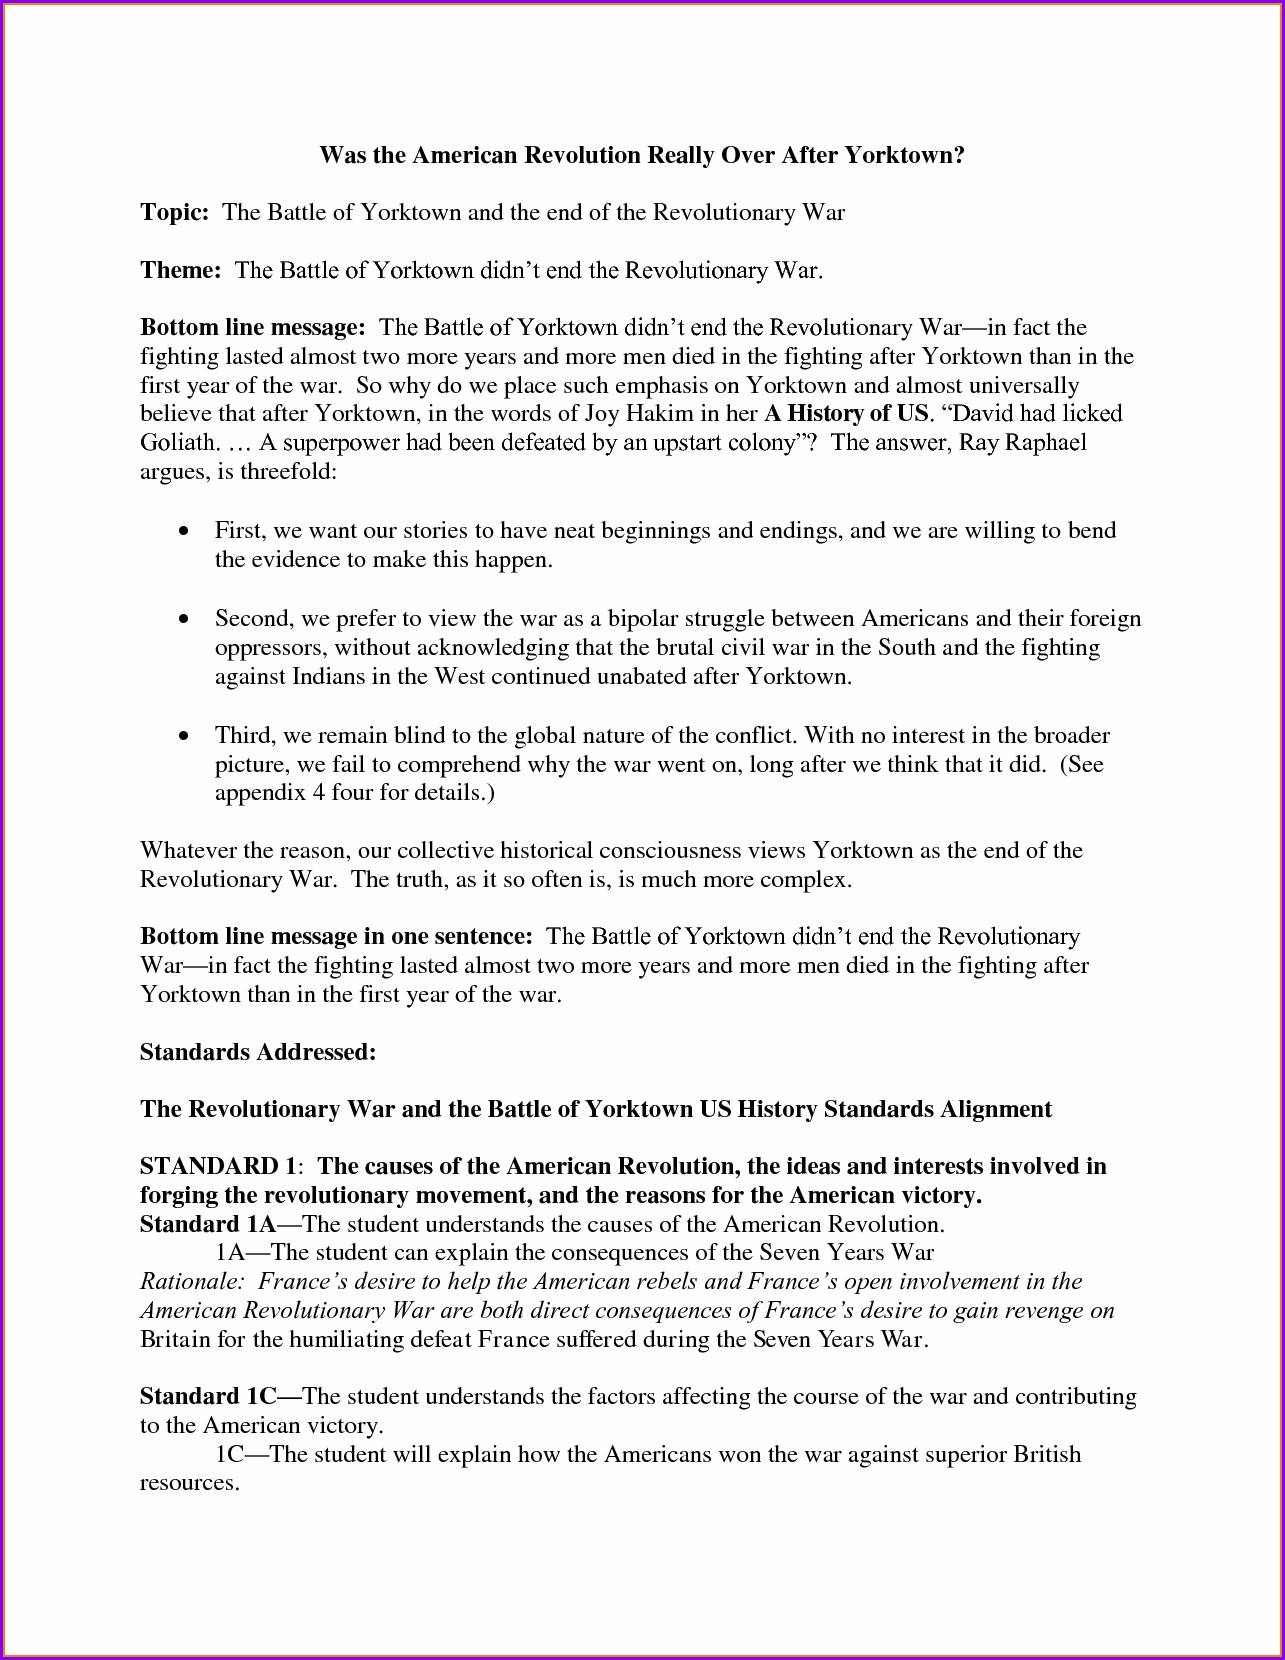 American Revolution Timeline Worksheet